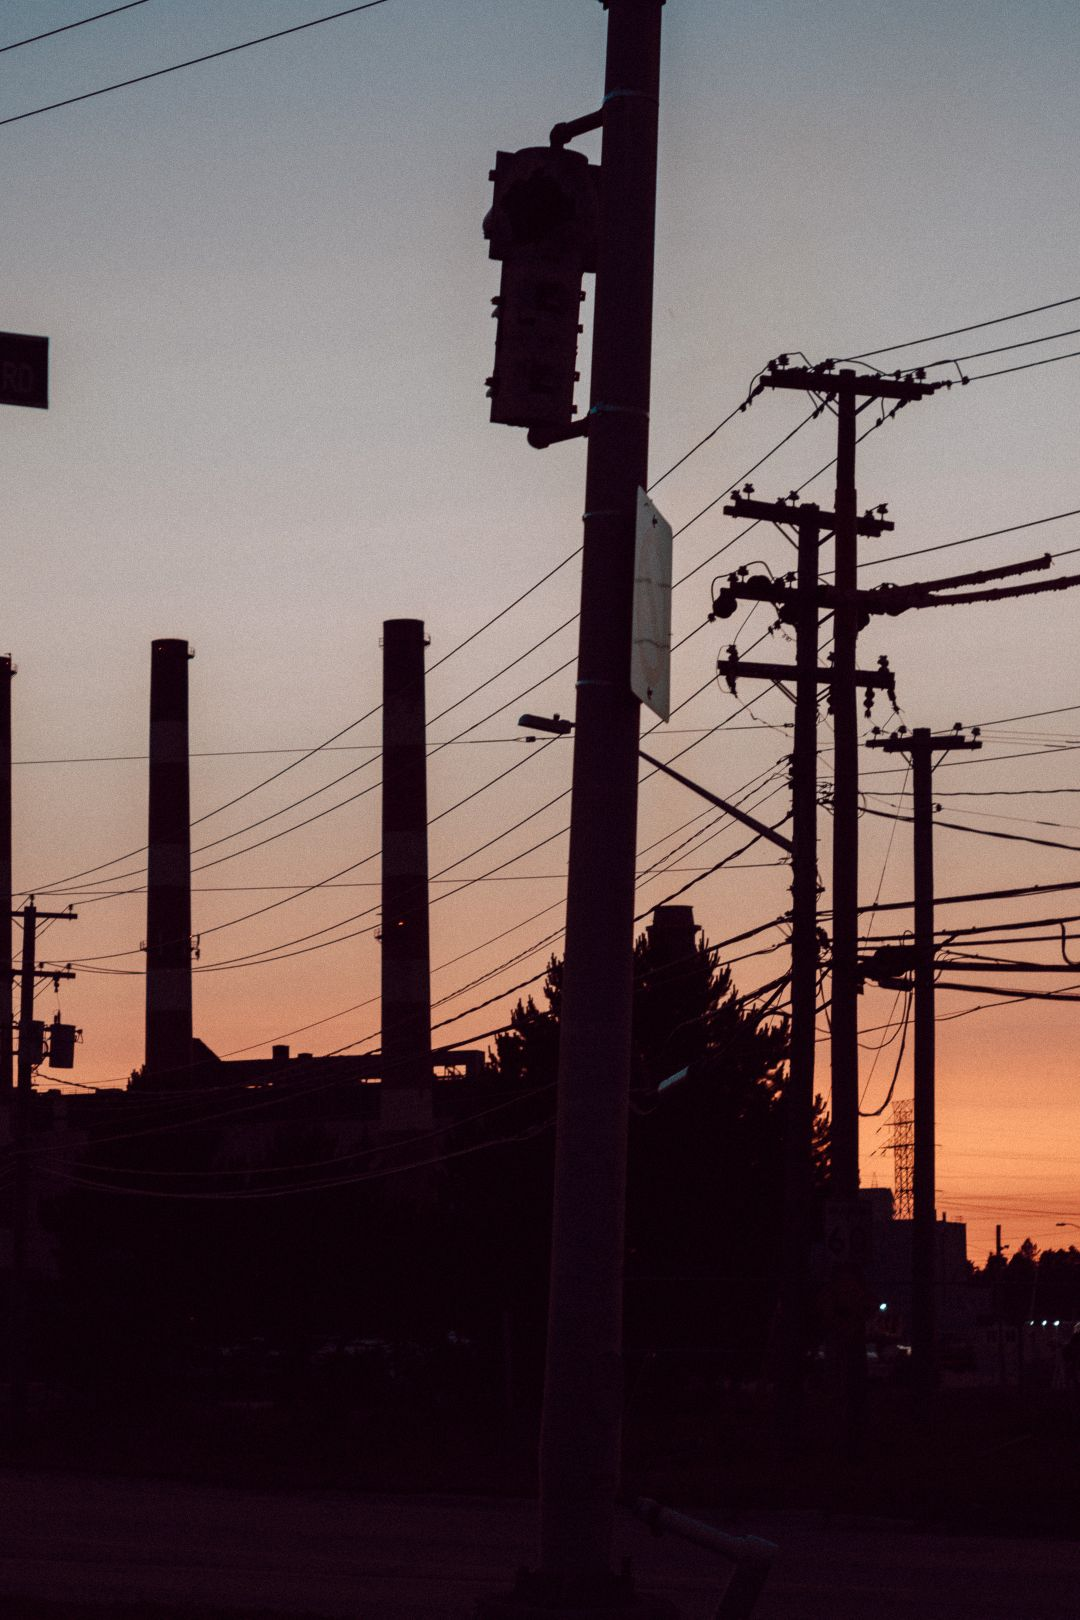 A photo depicting Telephone Poles Industrial Park Dusk